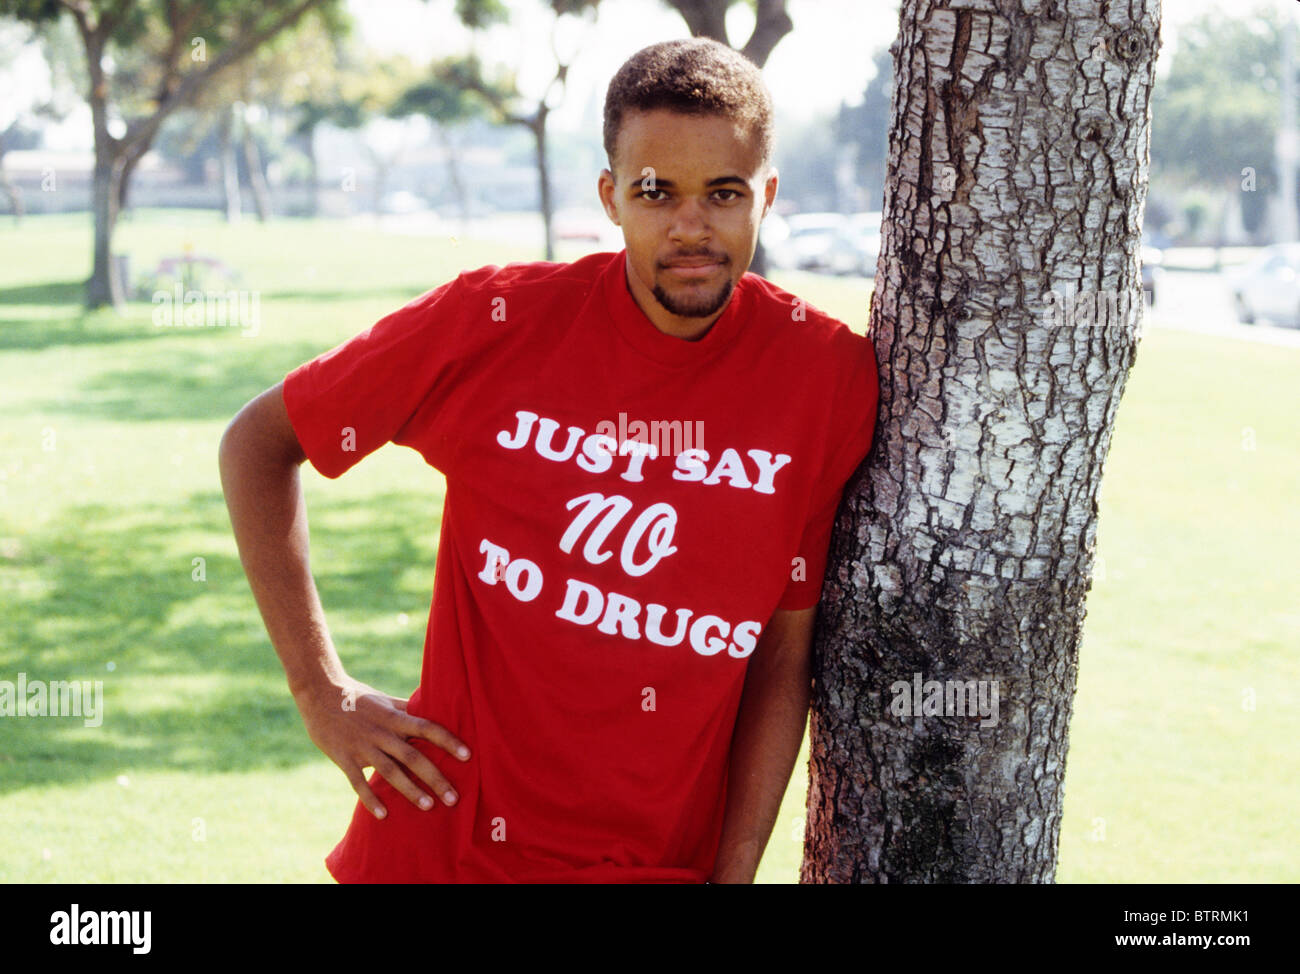 Black boy teen male Just Say No to Drugs shirt red wear support fight slogan fight resist program campaign law legal - Stock Image